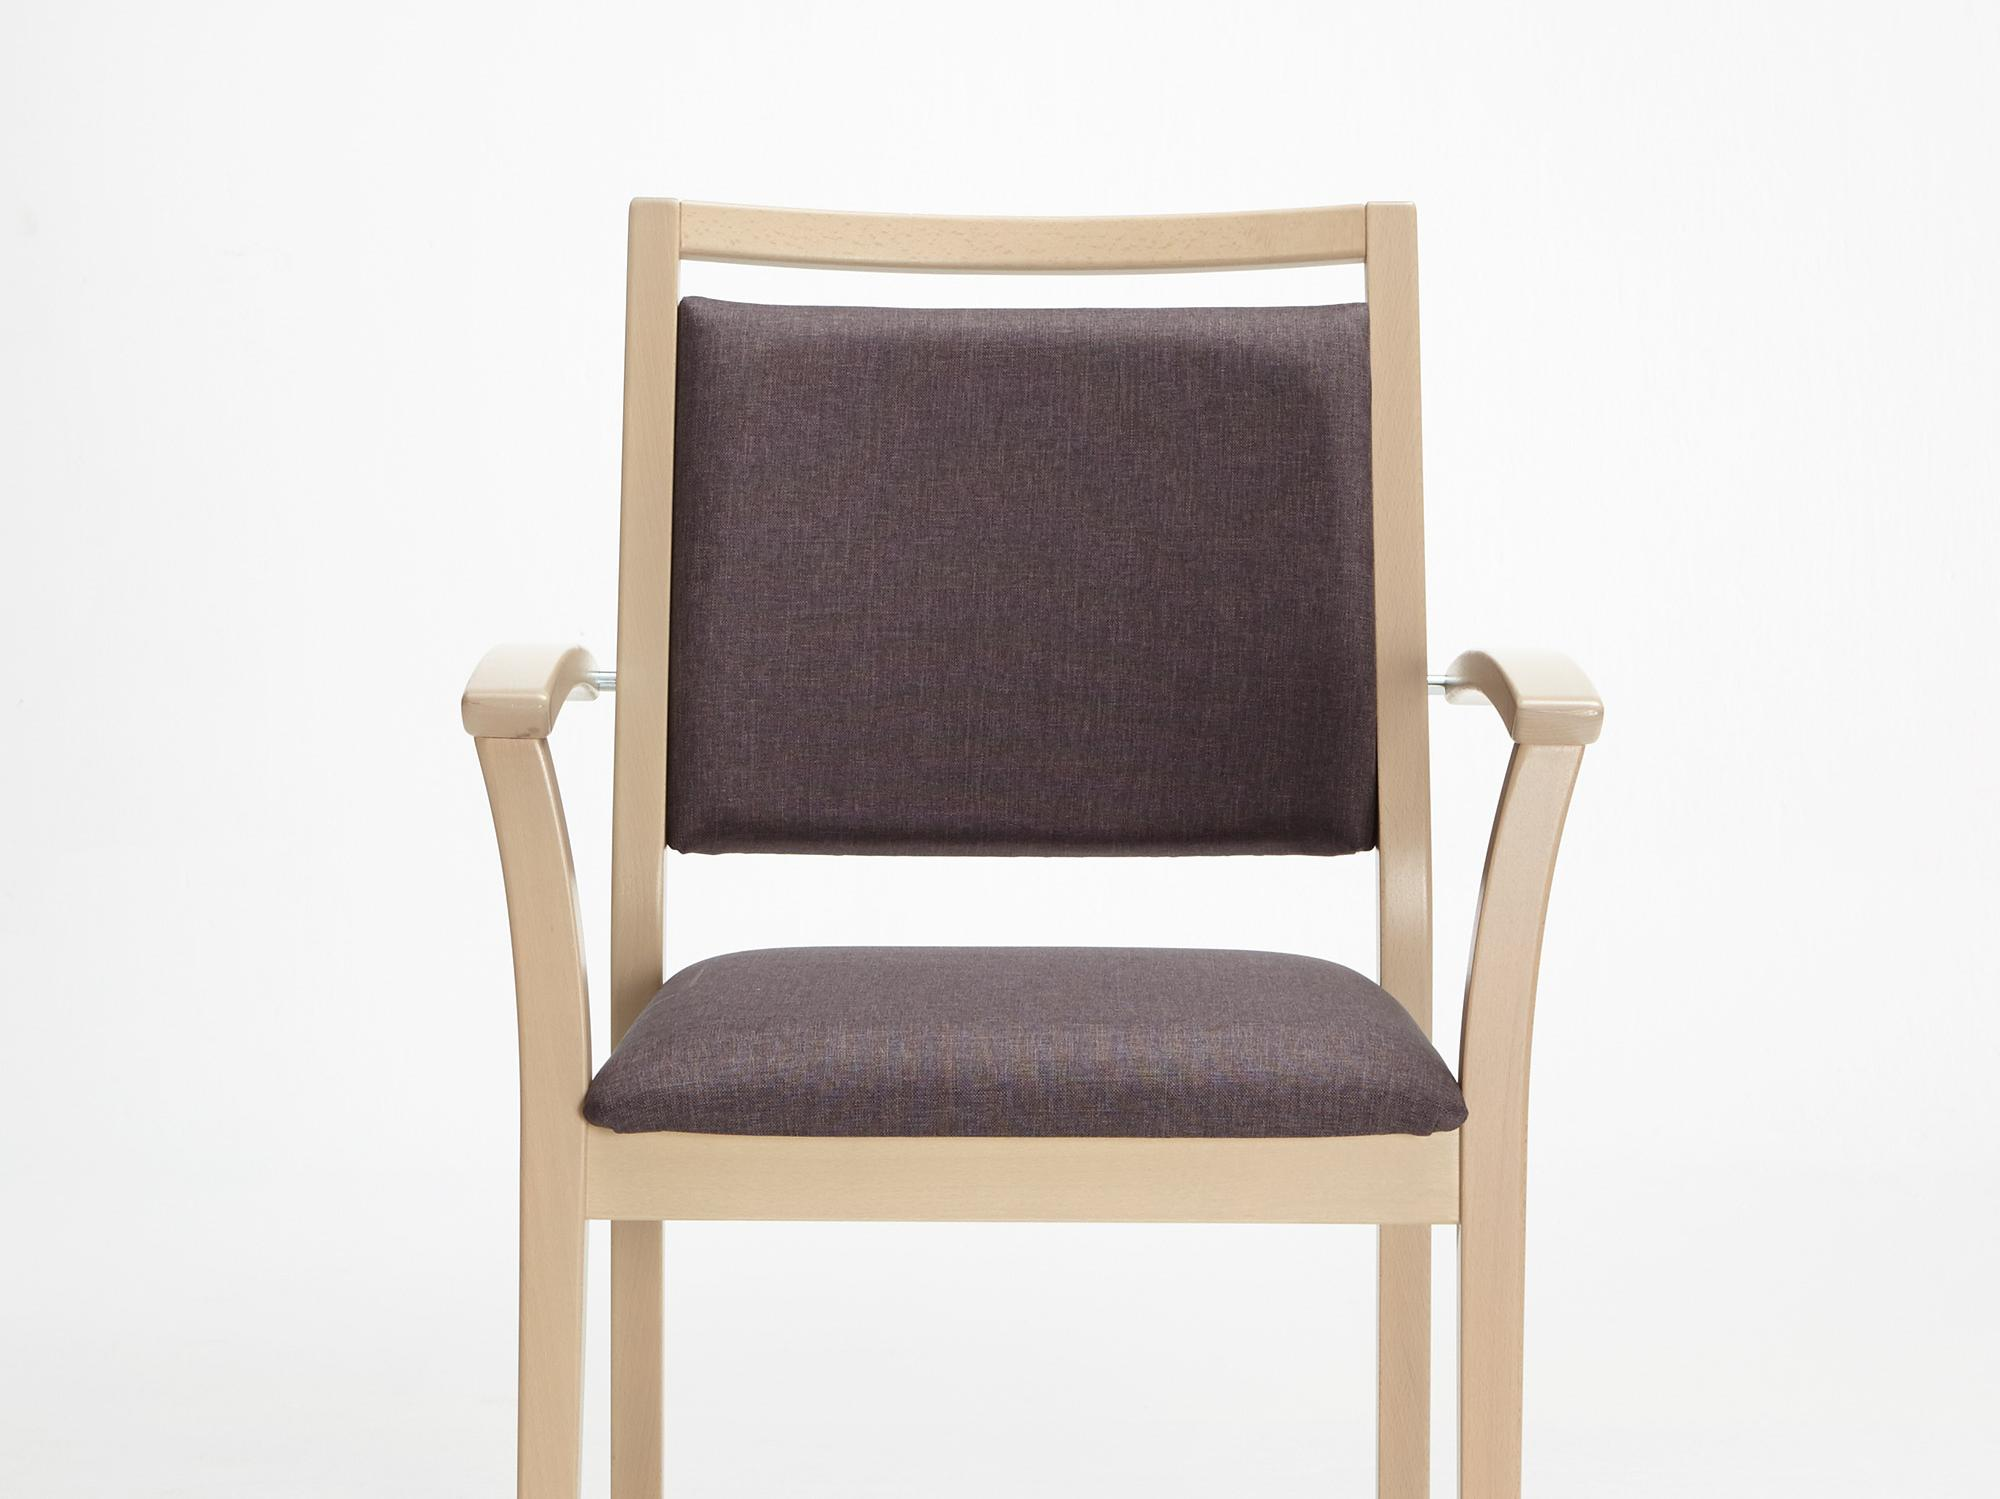 The Mavo model as a stackable chair with armrests